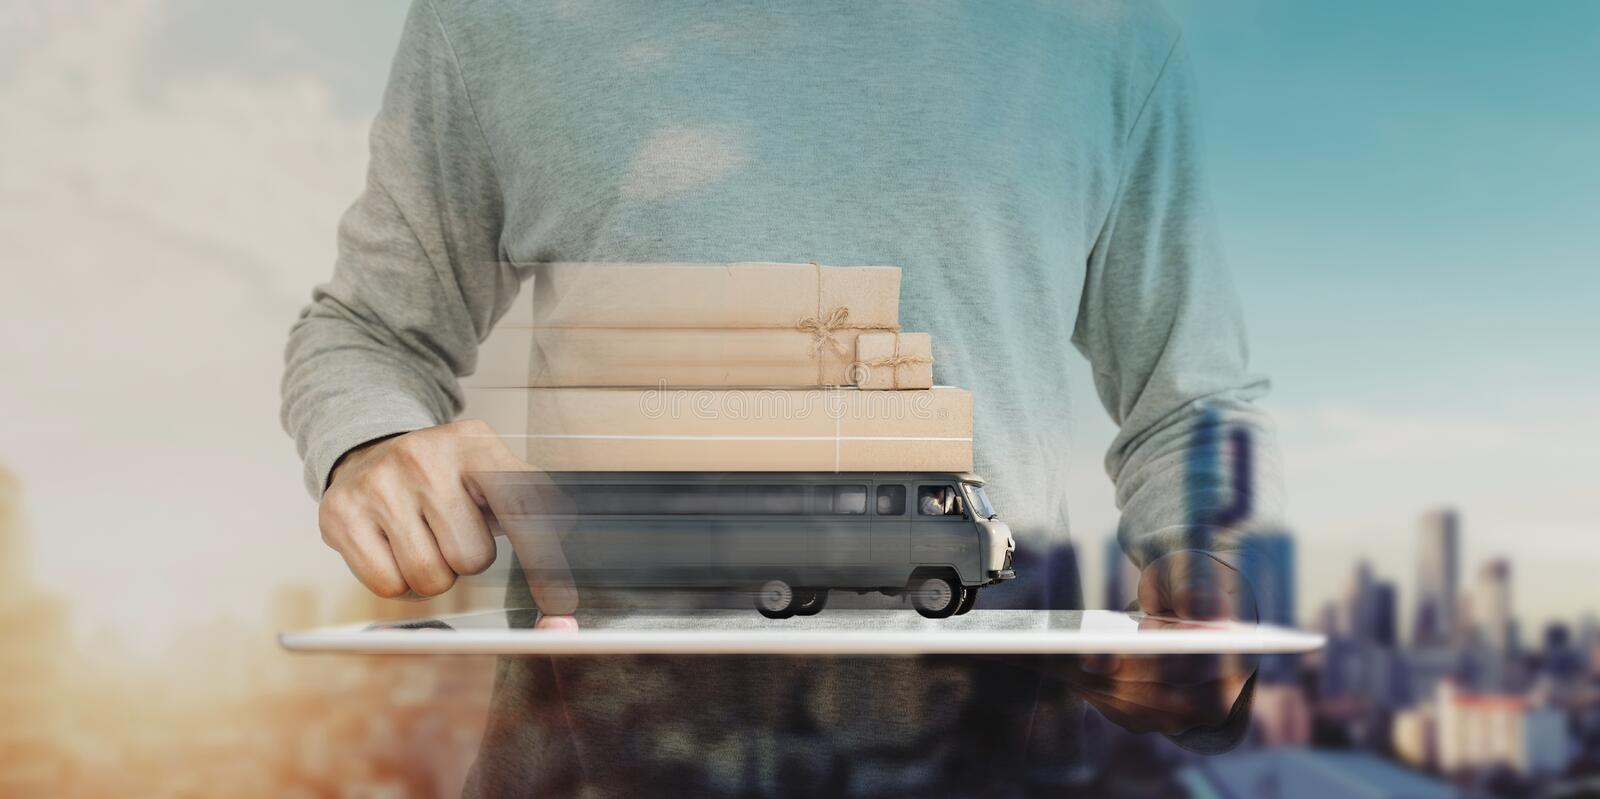 A man using digital tablet shopping online and delivery truck carrying parcel post boxes. Online shopping, e-commerce and delivery royalty free stock images